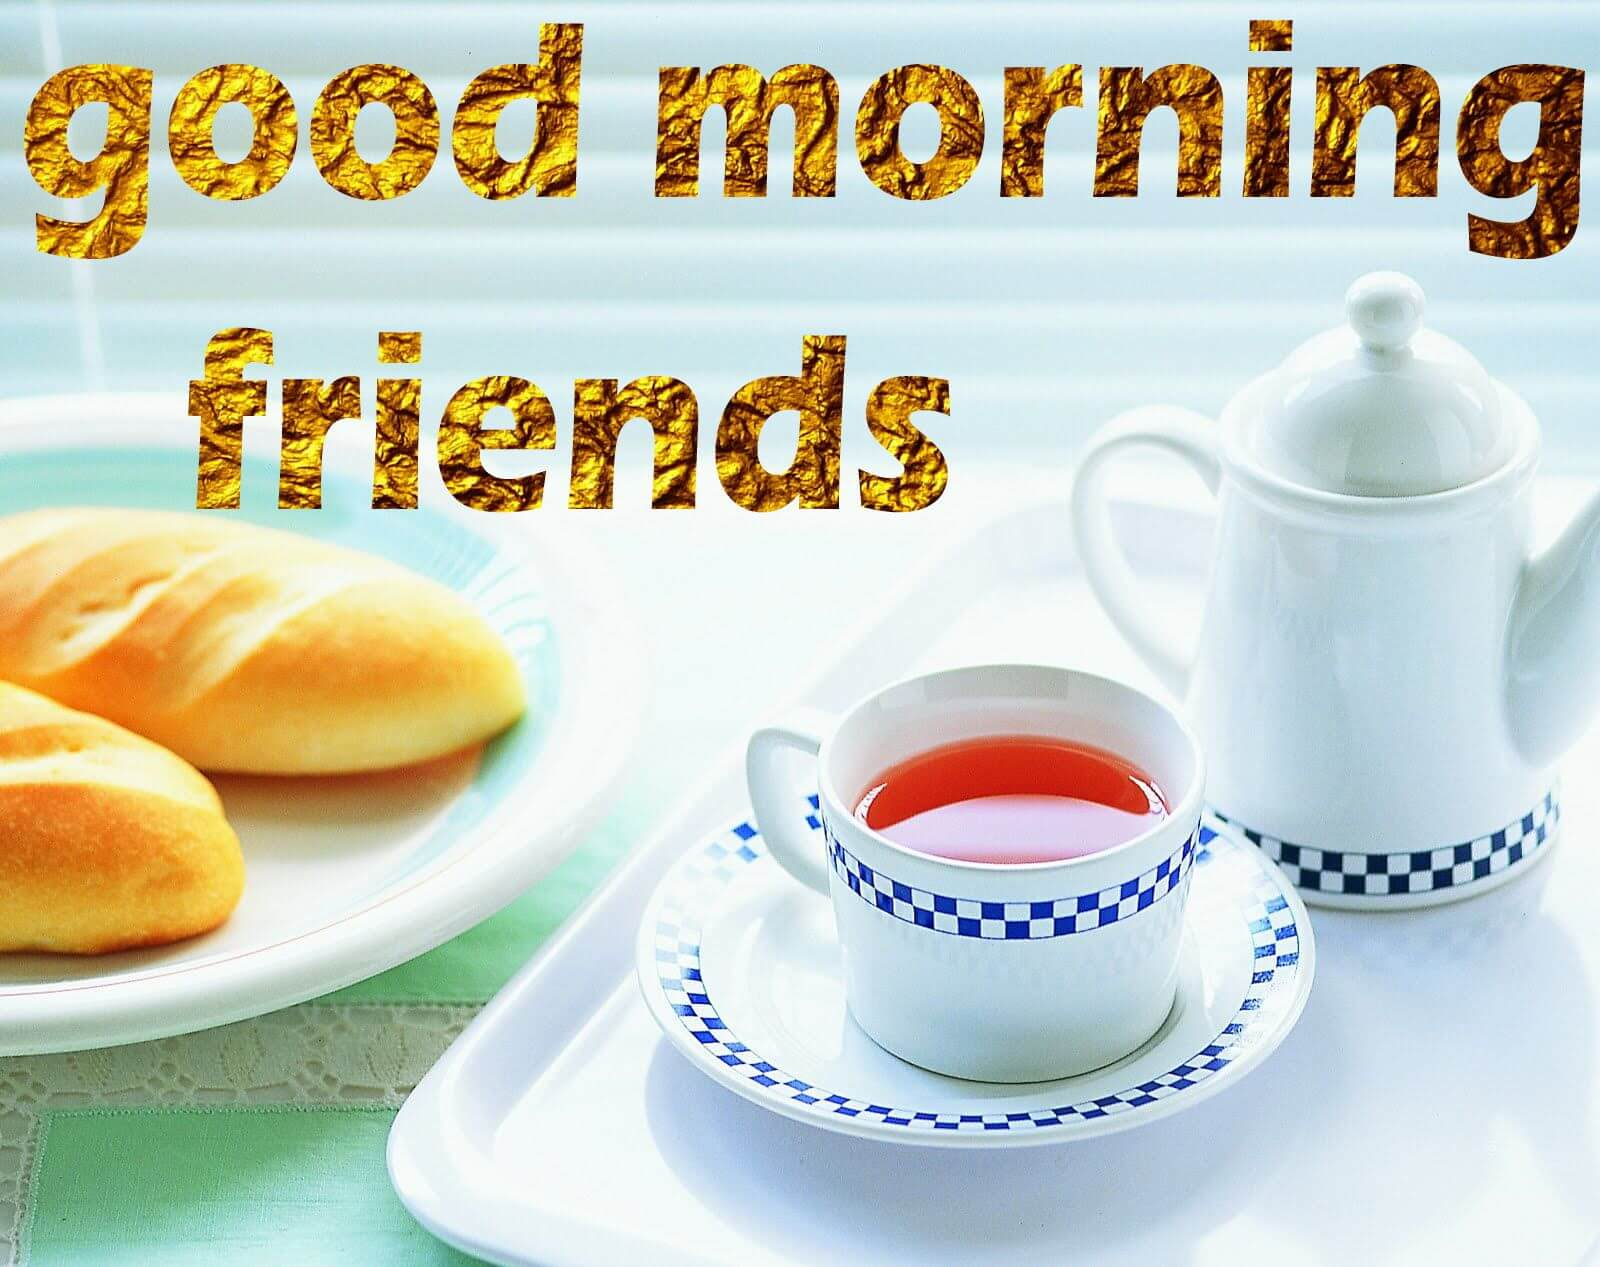 Wallpaper Of Good Morning Friends